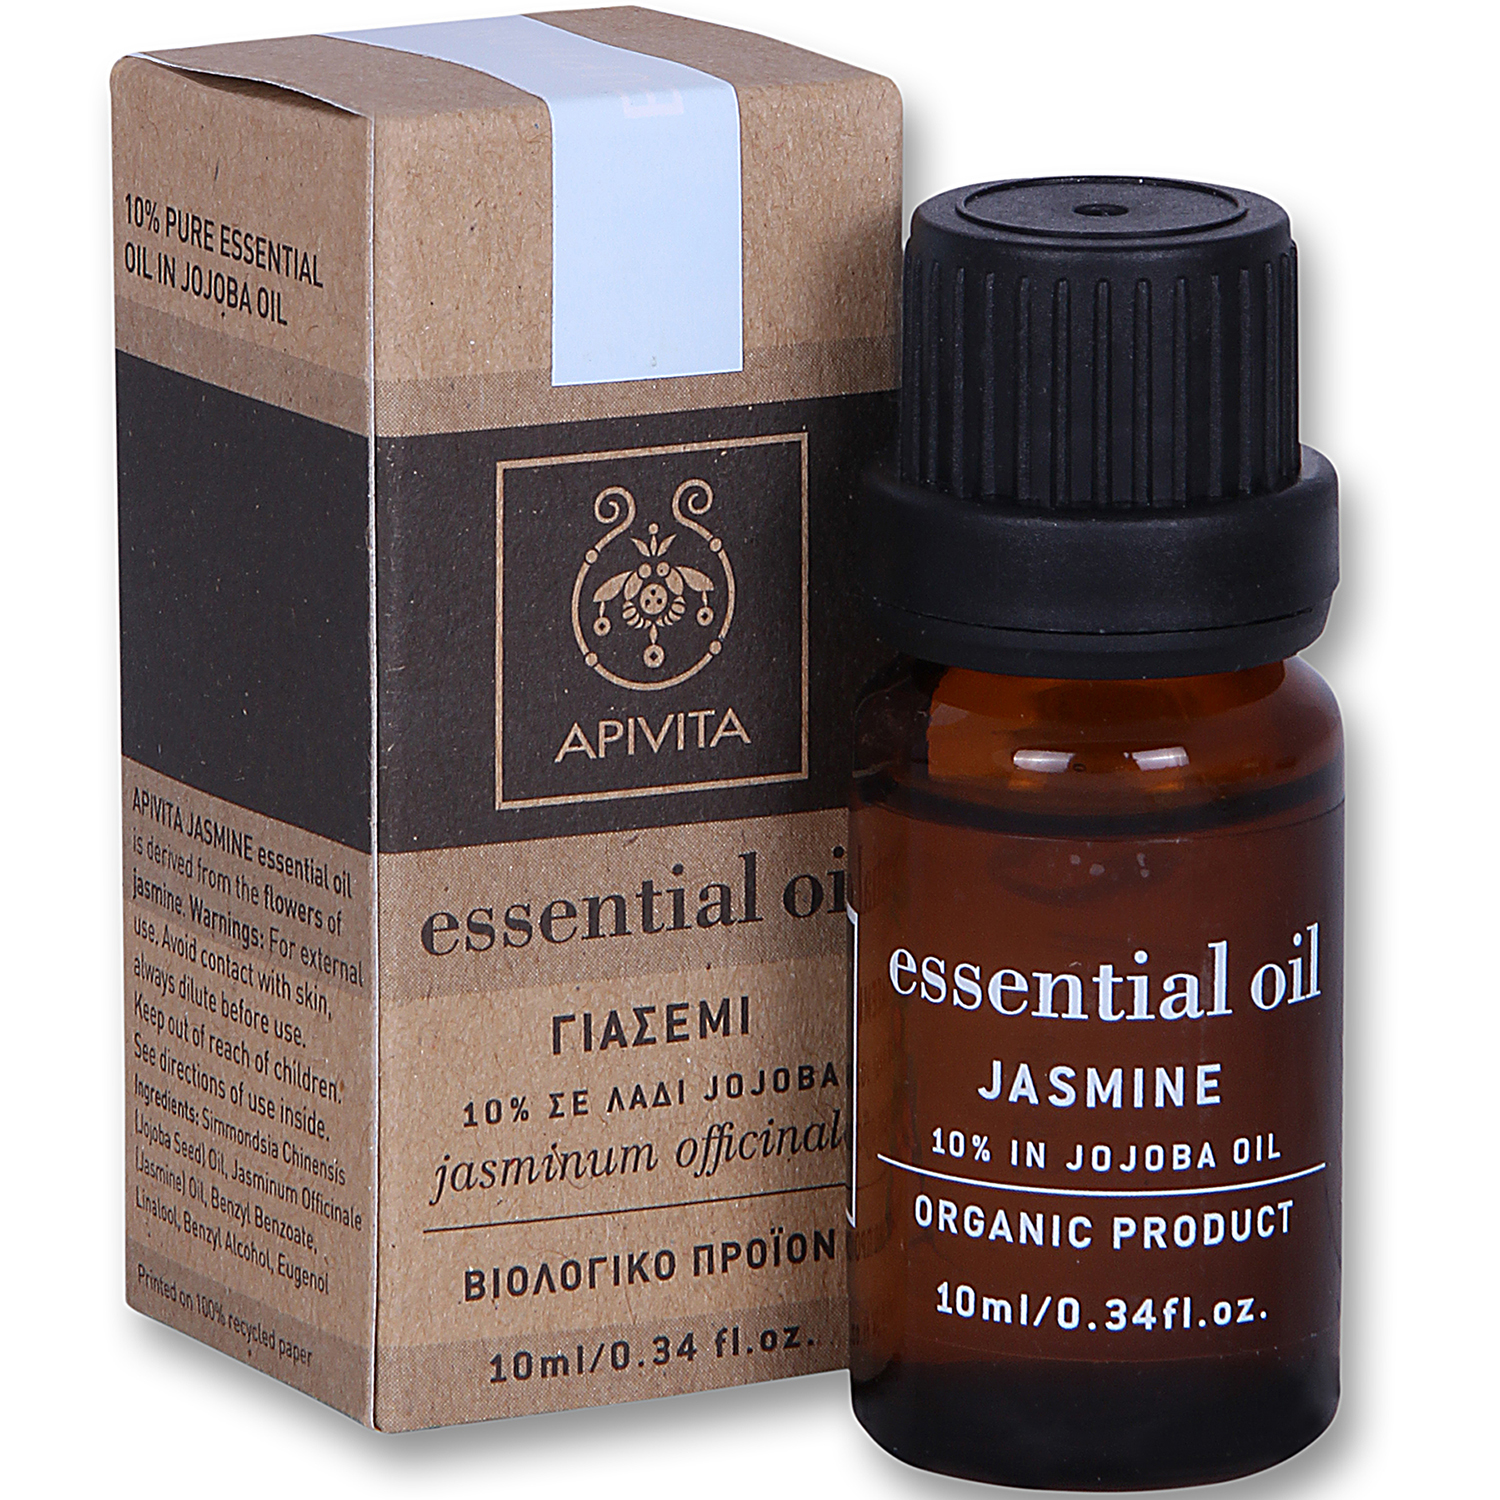 Apivita Essential Oil Γιασεμί 10% σε Λάδι Jojoba 10ml